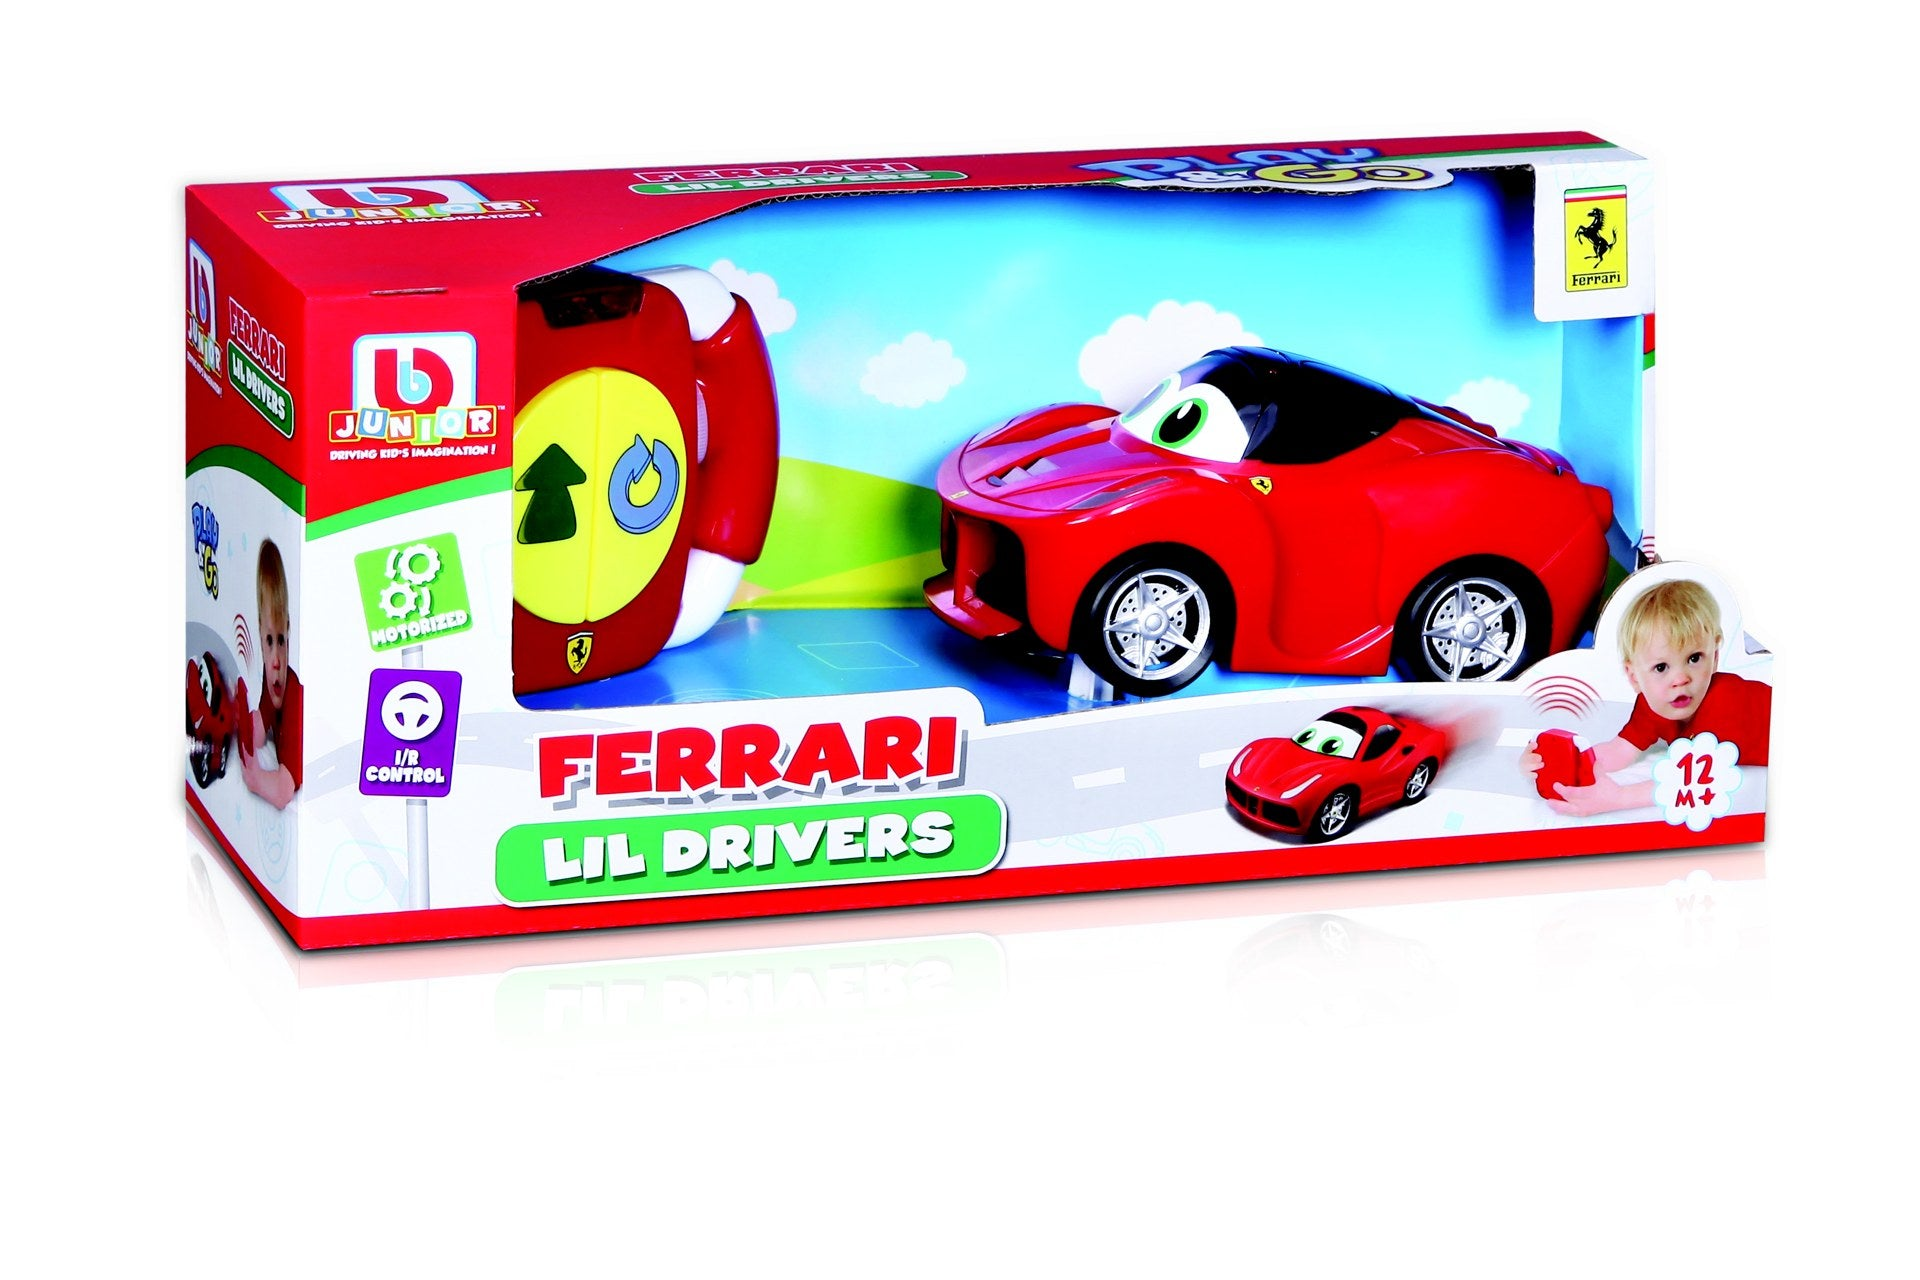 Ferari Lil Driver - BB Junior